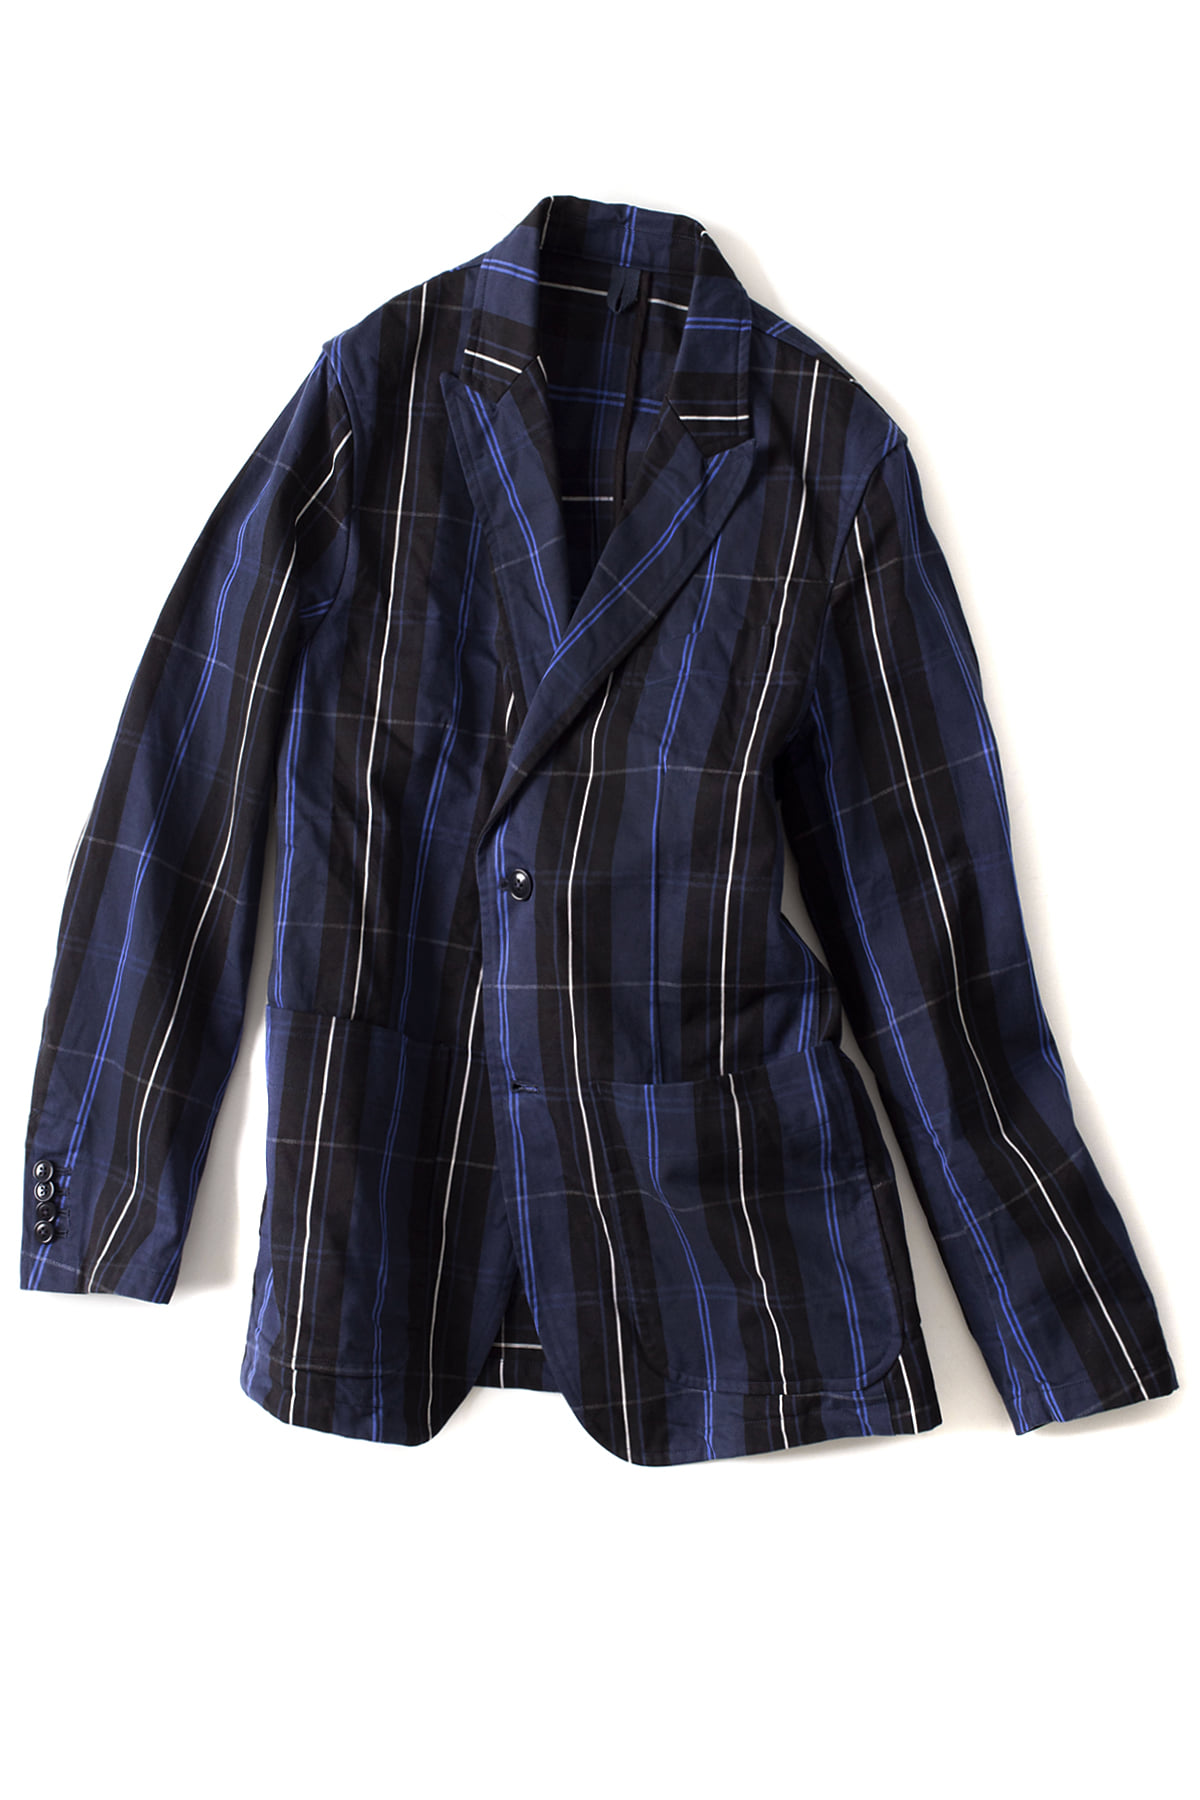 Ts(s) : 2Button Peaked Lapel Jacket (Navy)